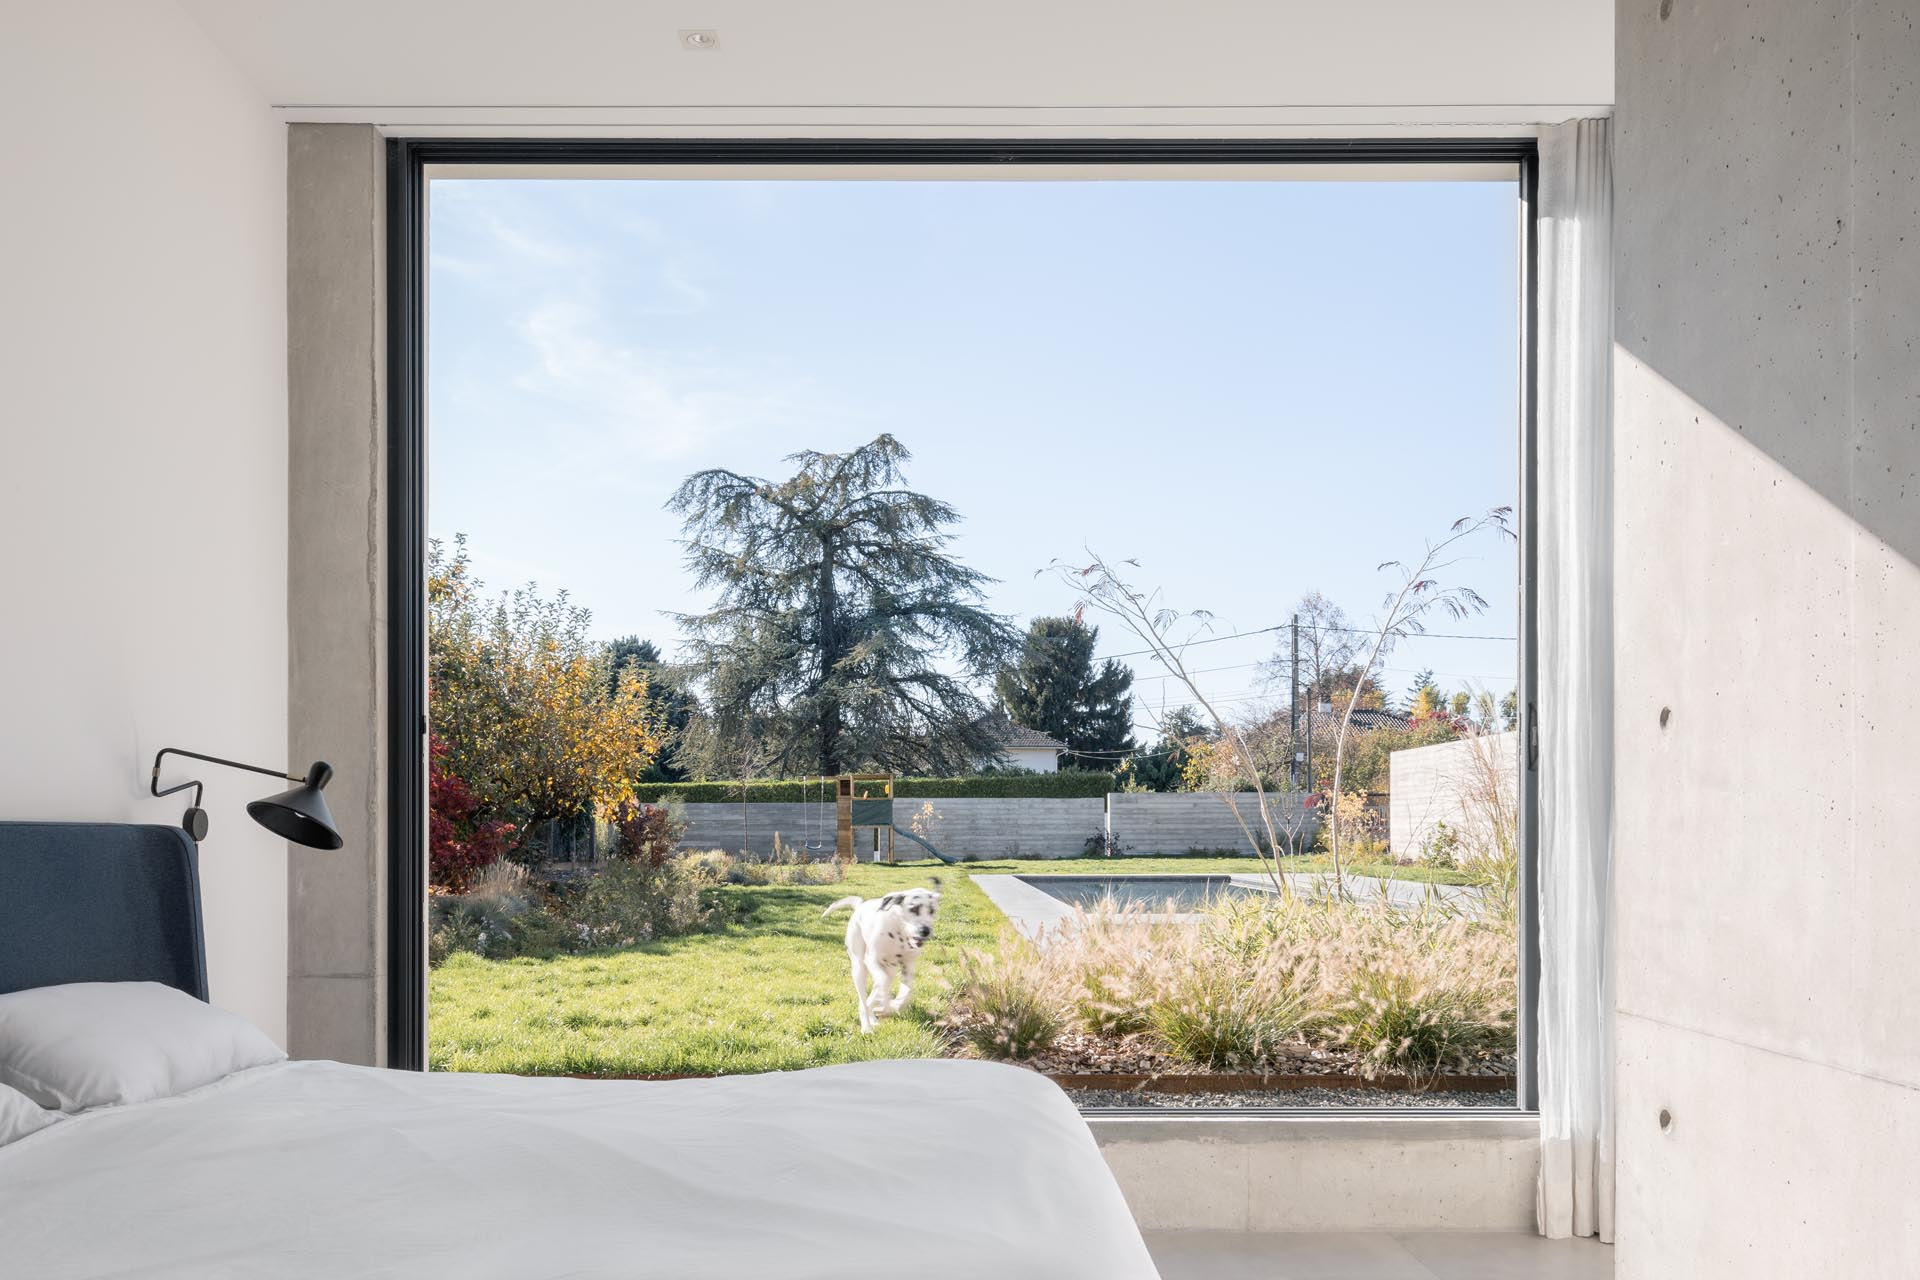 A modern bedroom with a large window that opens to the backyard.